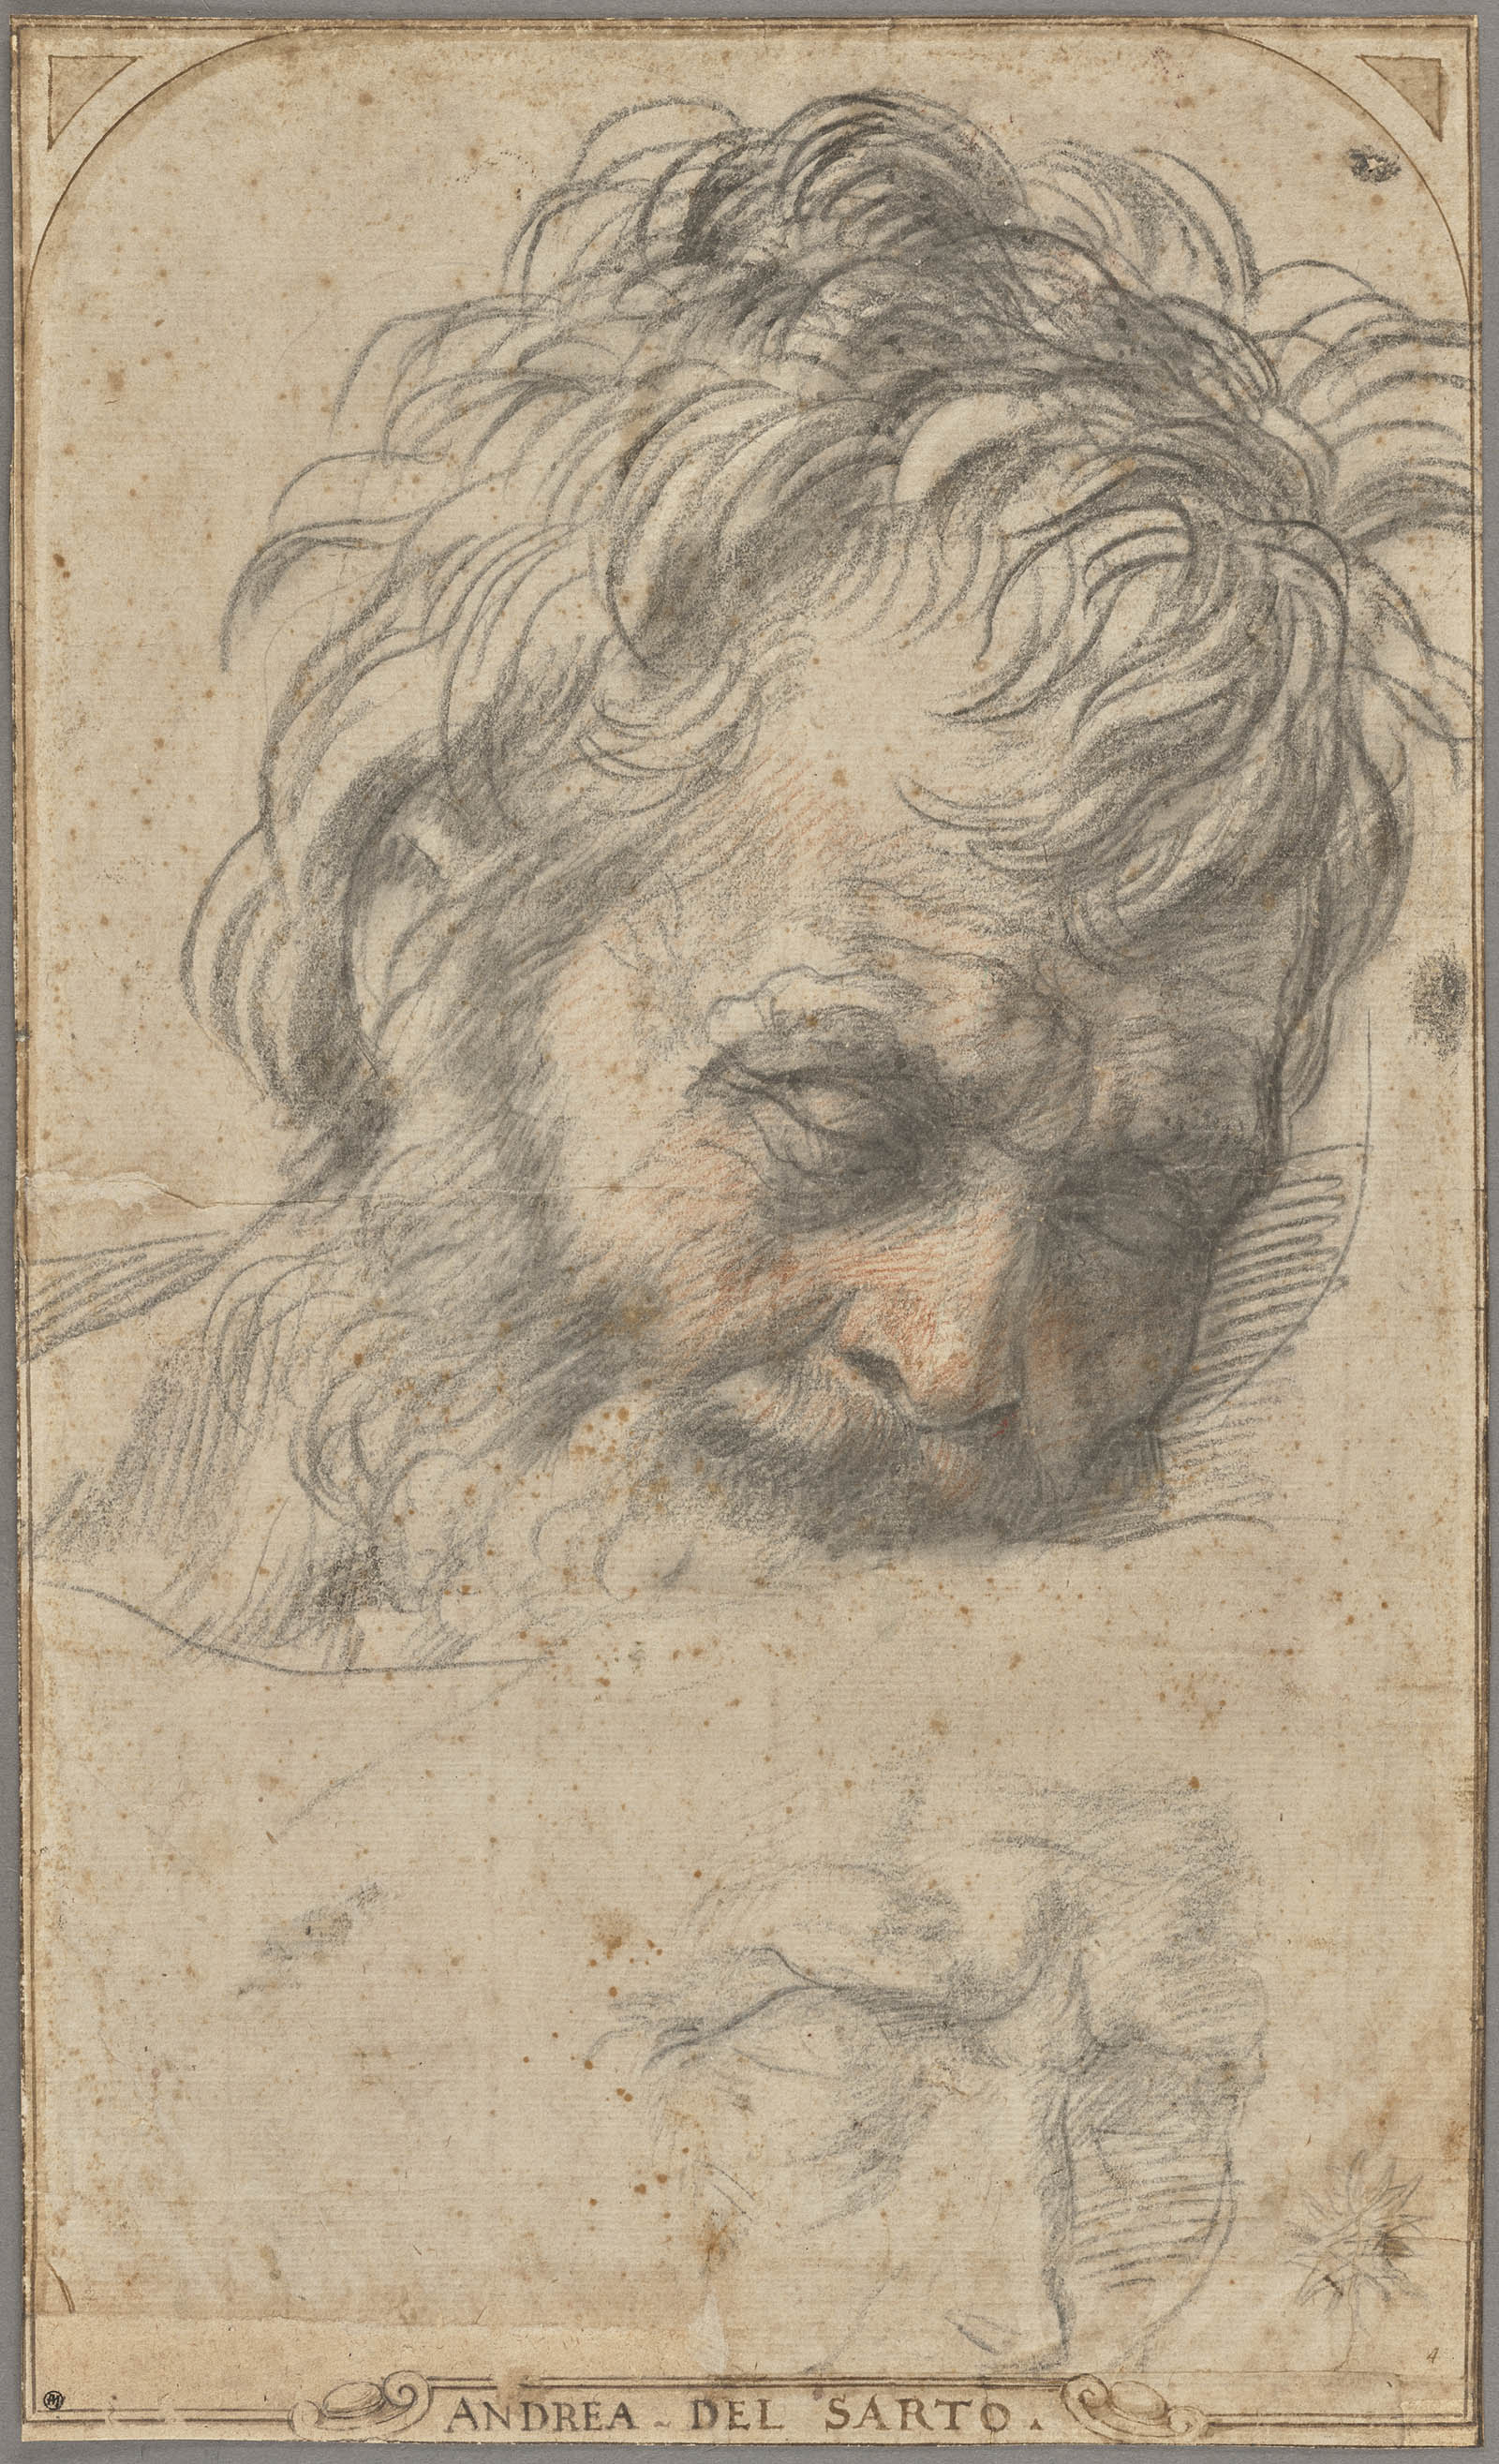 Sketch of the head of a man with shaggy hair, beard, and weathered face.